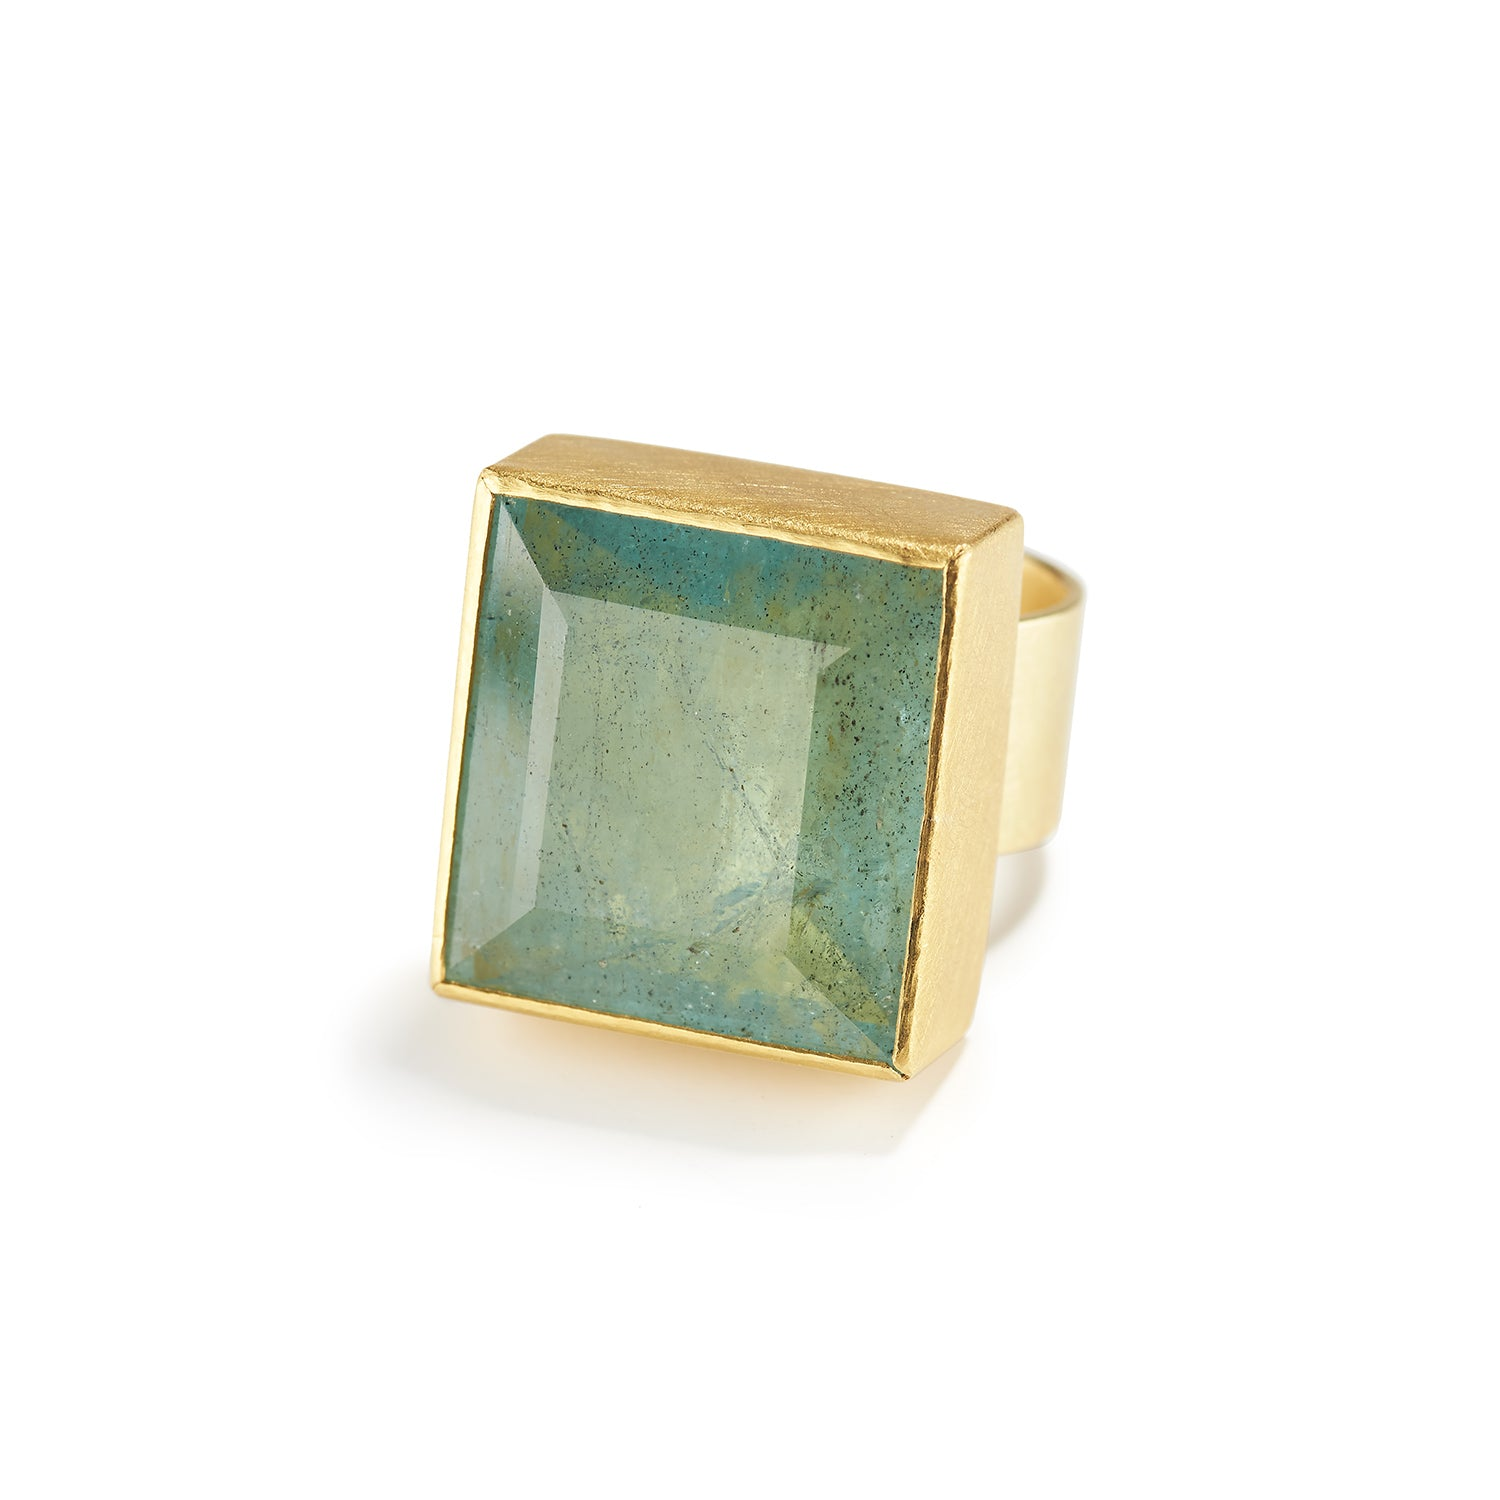 aquamarine img seawood gallery victoria seawoodenamel ring jewellery product plymouth contemporary enamel devon sewart